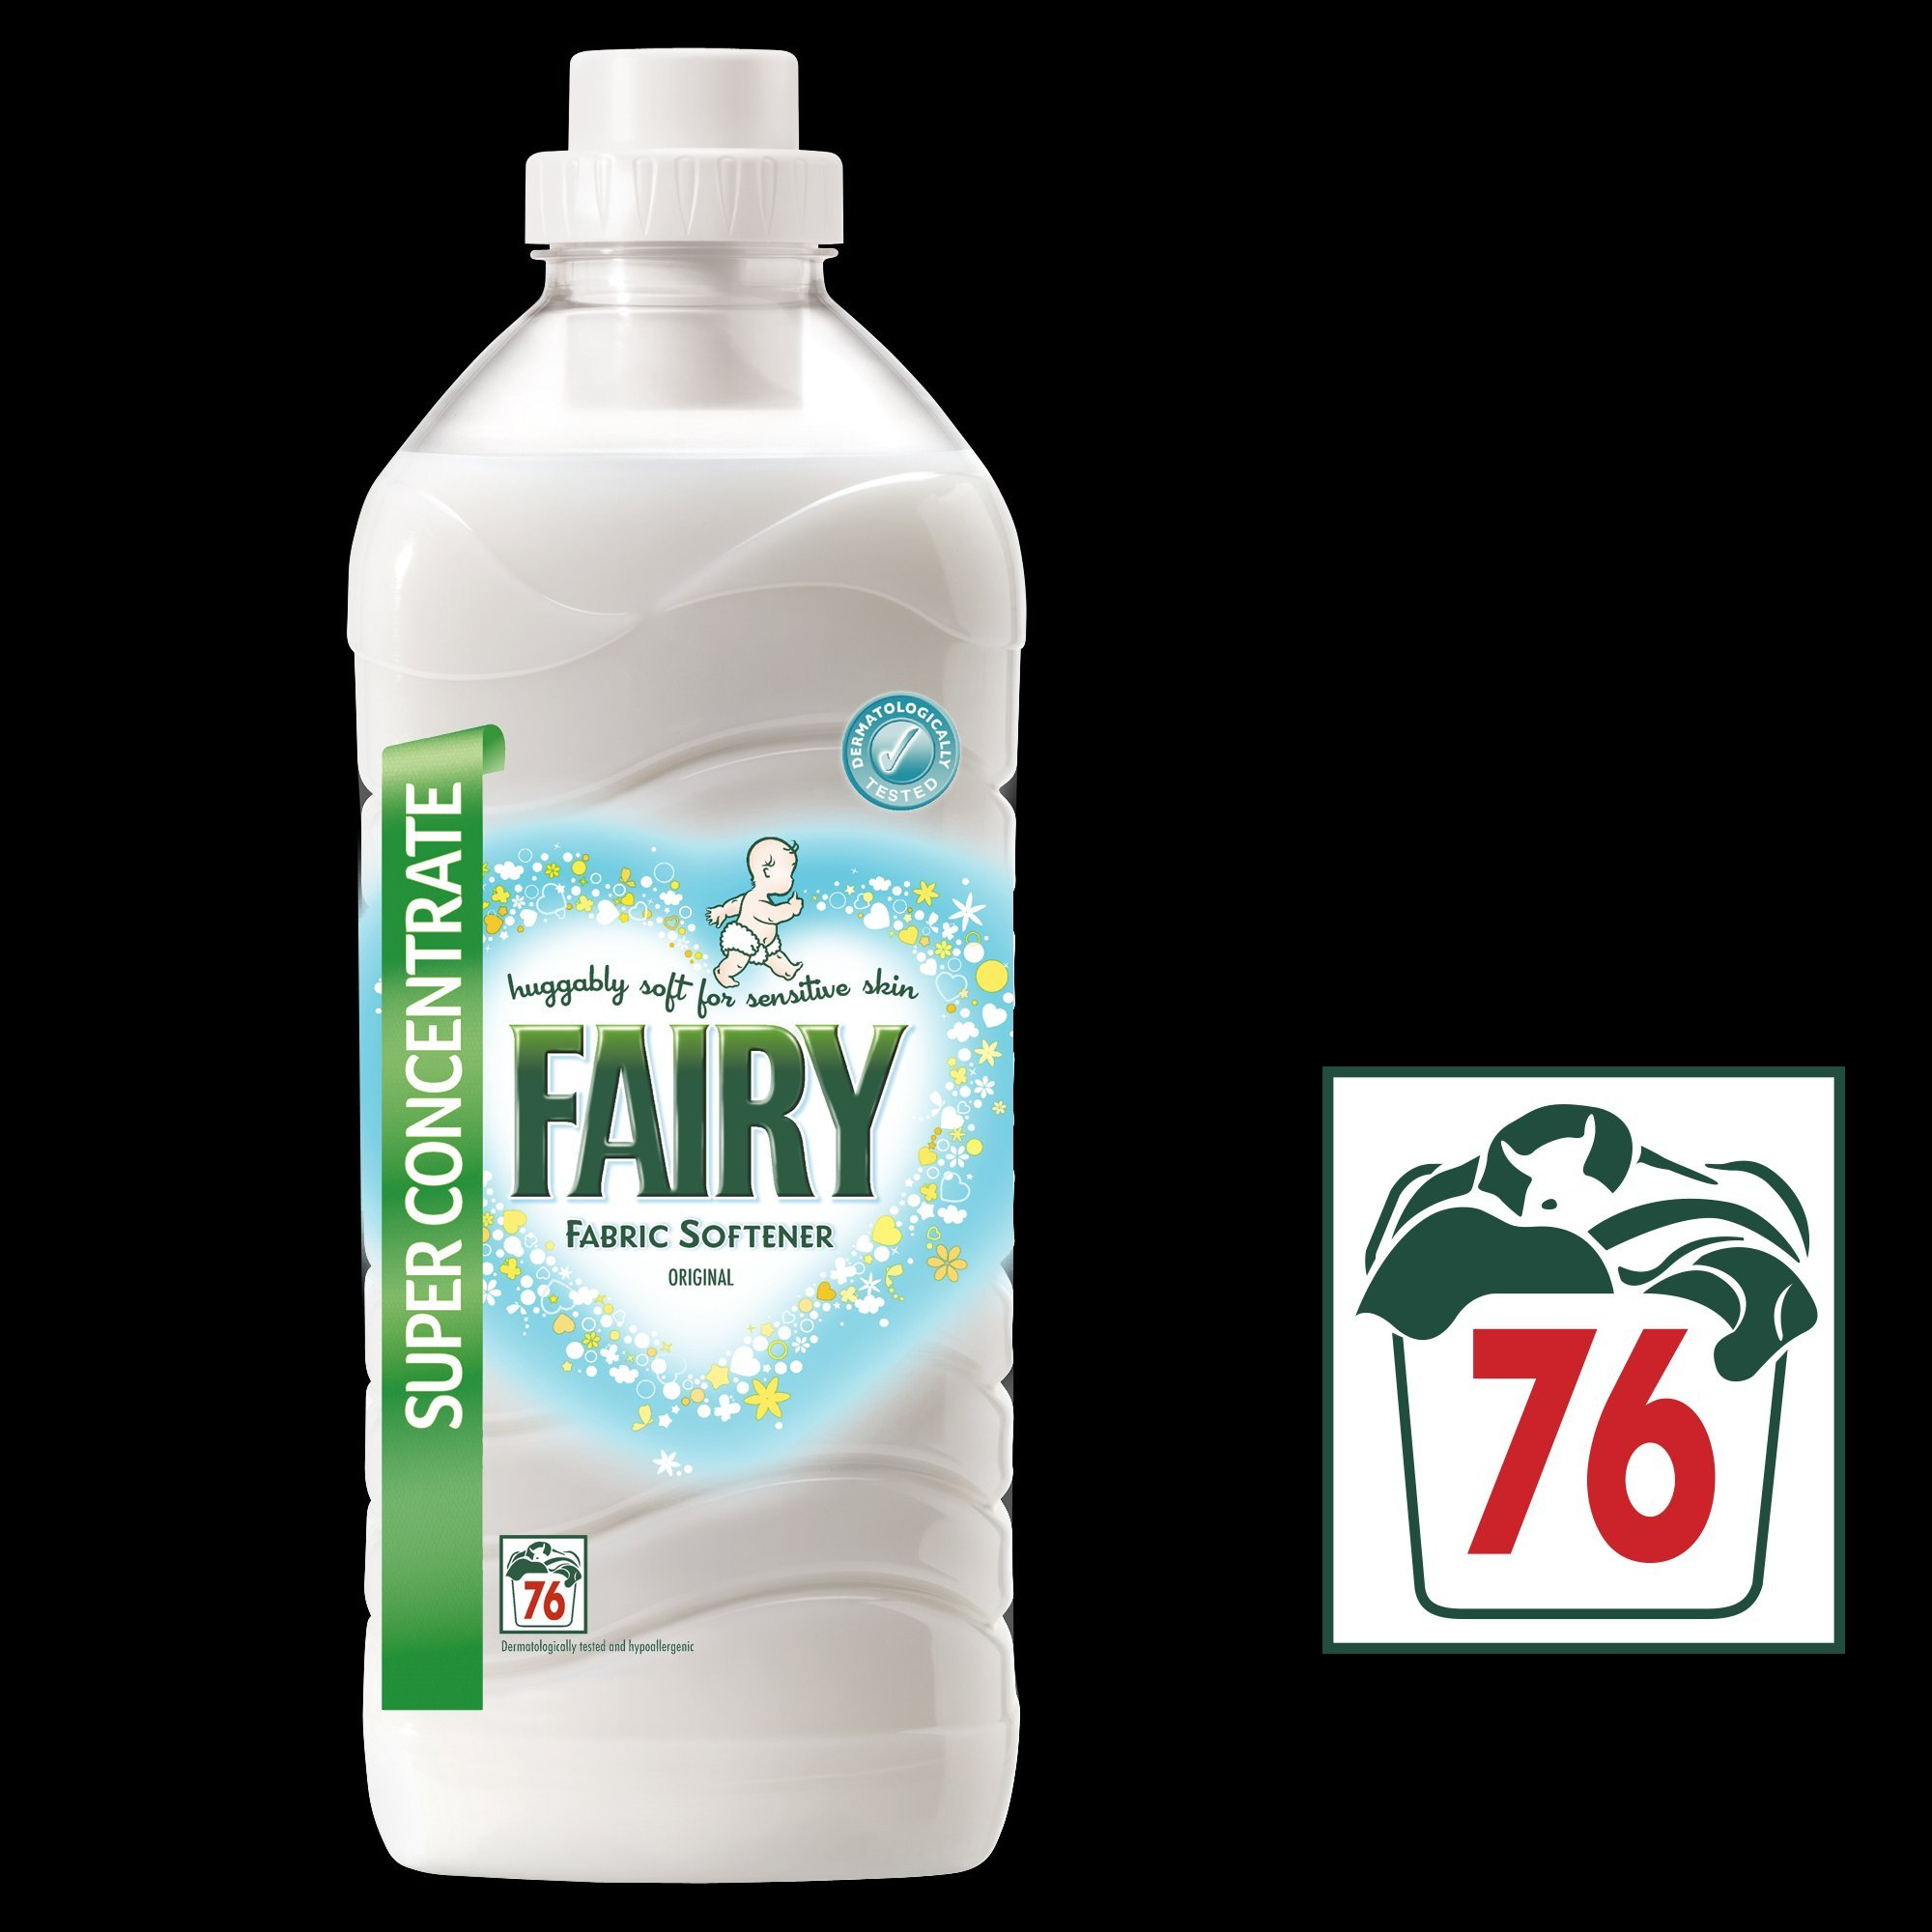 Fairy Fabric Conditioner, 76 wash 1.9L - Pack of 6